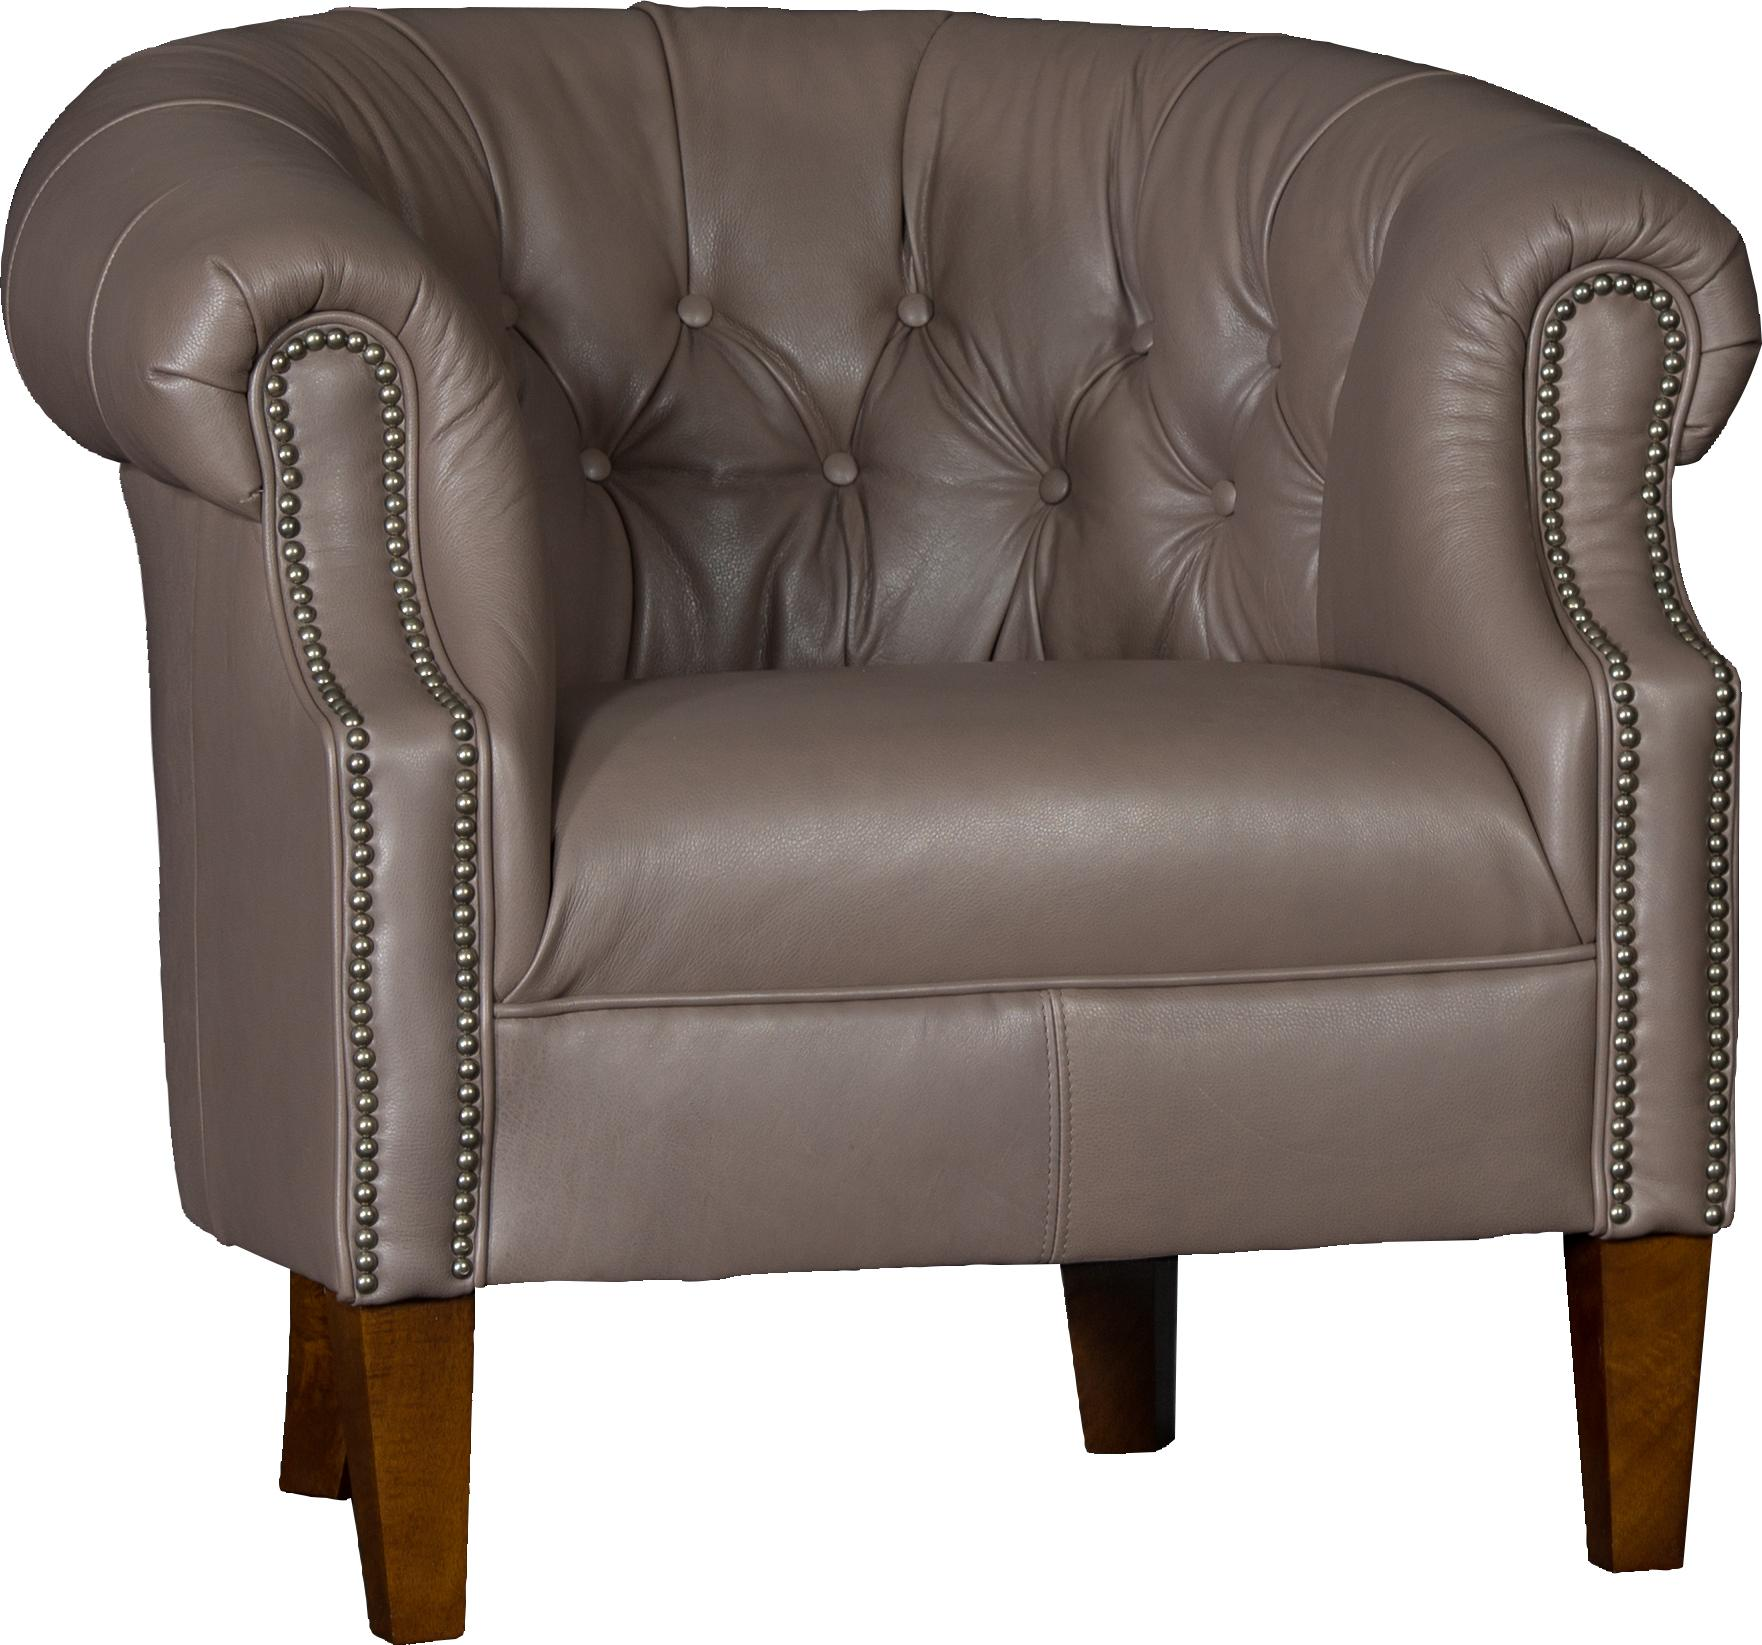 8220 Chair by Mayo at Wilcox Furniture